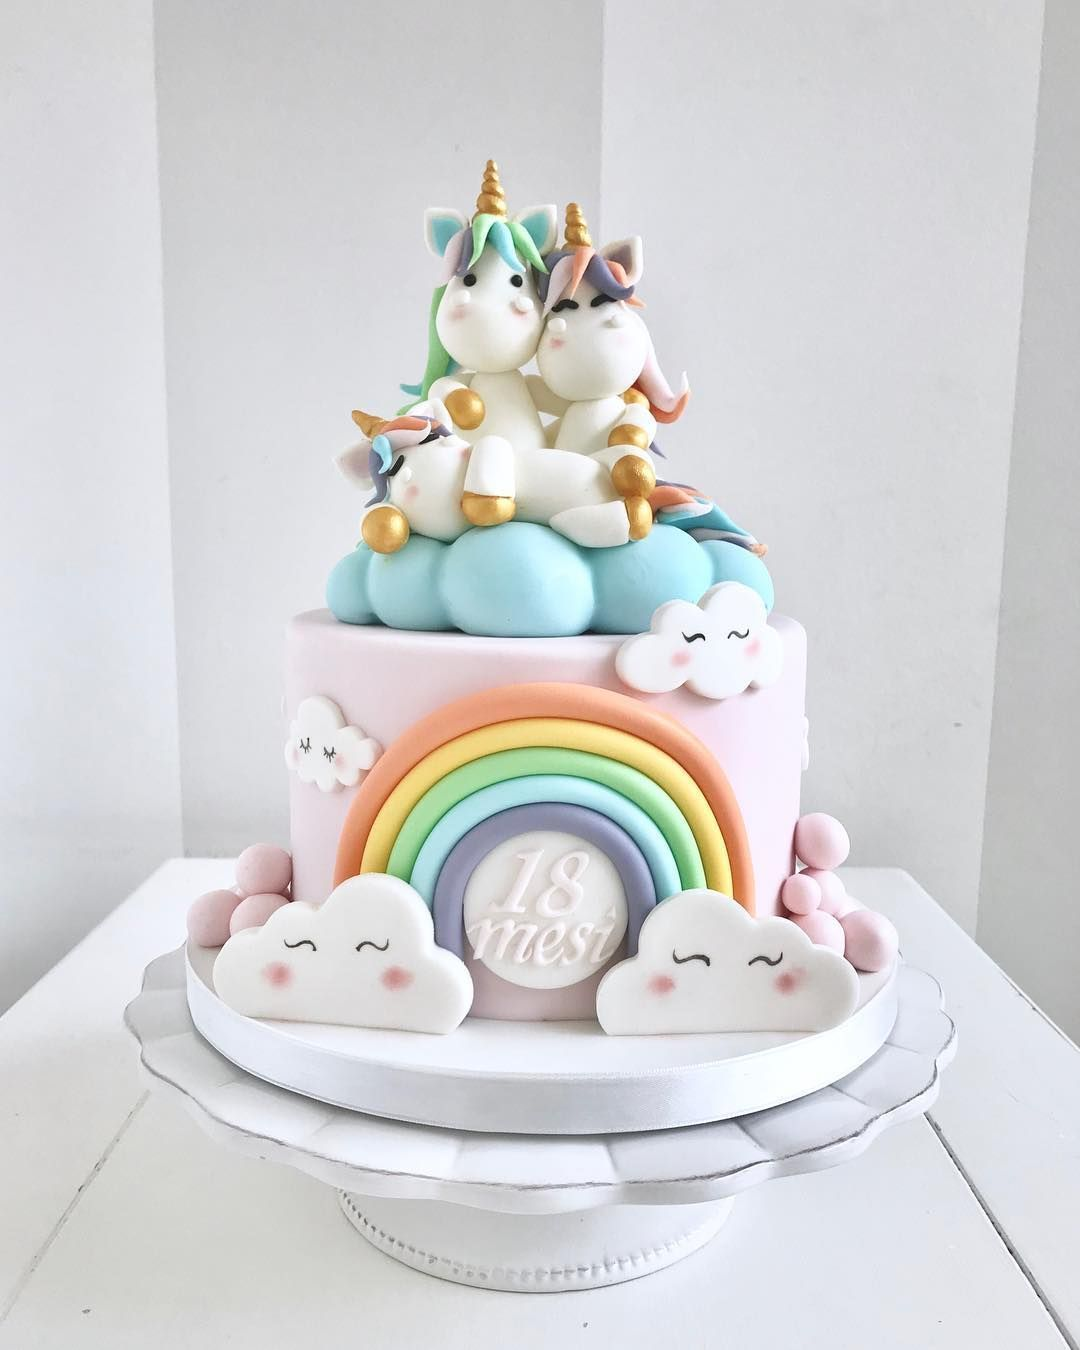 Flavorsome Desserts On Instagram Cake For 18 Months Old Angelica